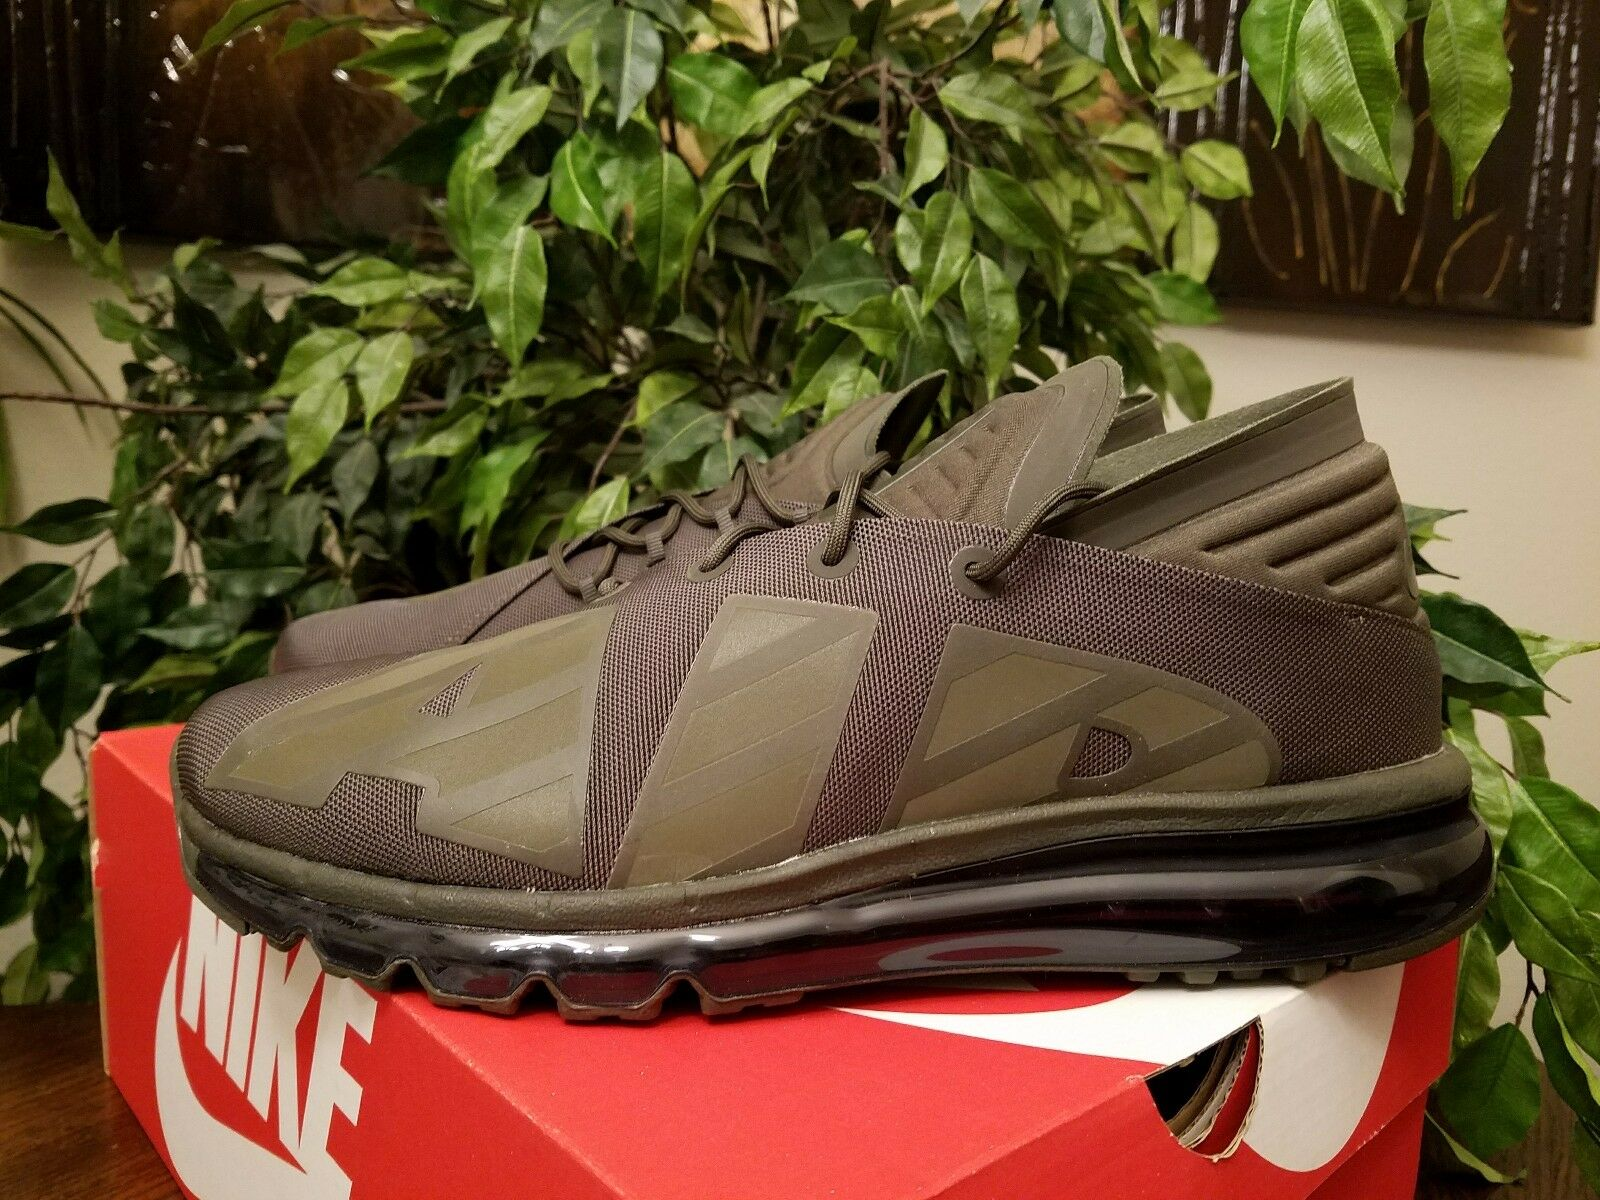 Nike Men's Air Max Flair SE Sneakers Size 11.5 Olive AA4084-300 THESPOT917